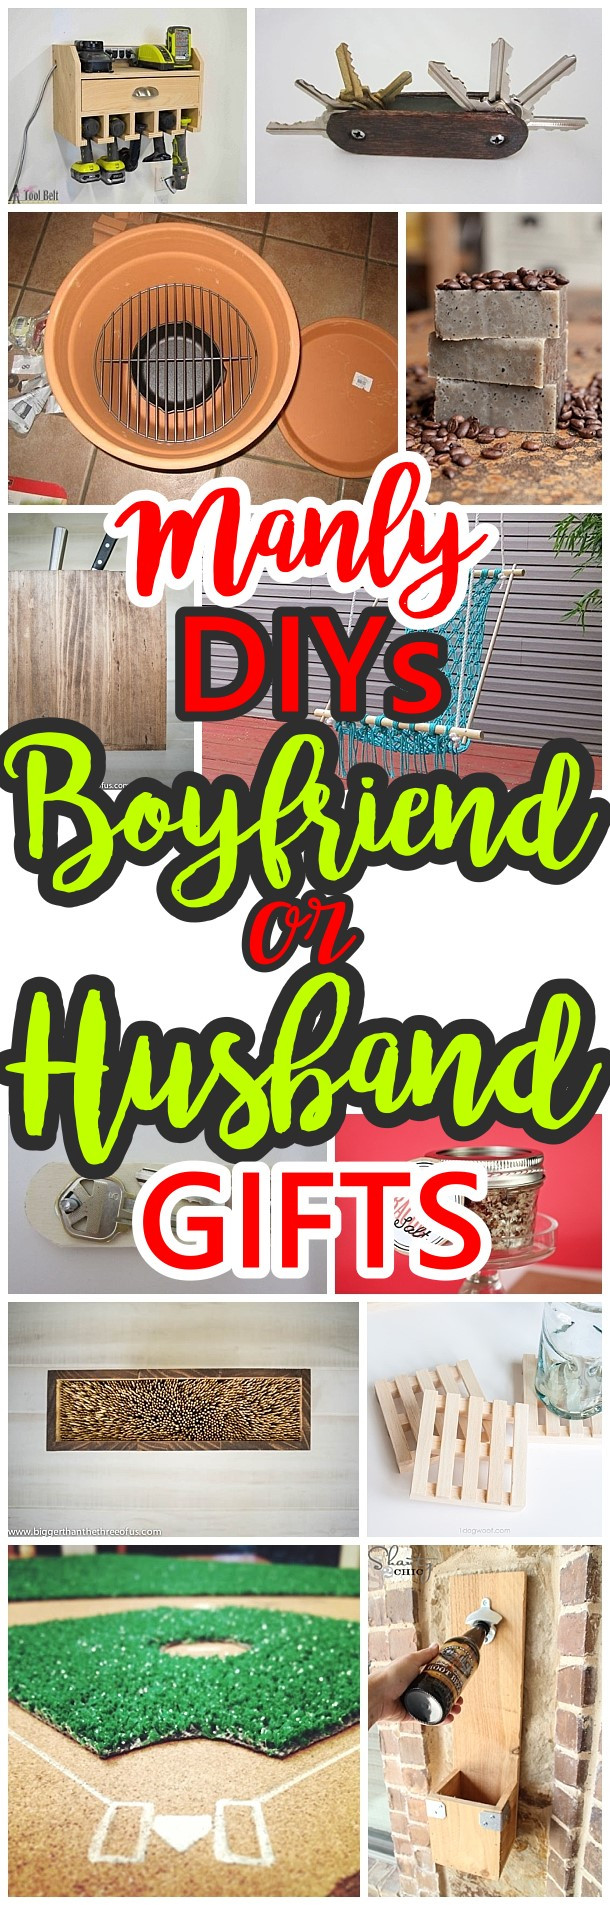 Best ideas about DIY Christmas Gifts For Husband . Save or Pin Manly Do It Yourself Boyfriend and Husband Gift Ideas Now.